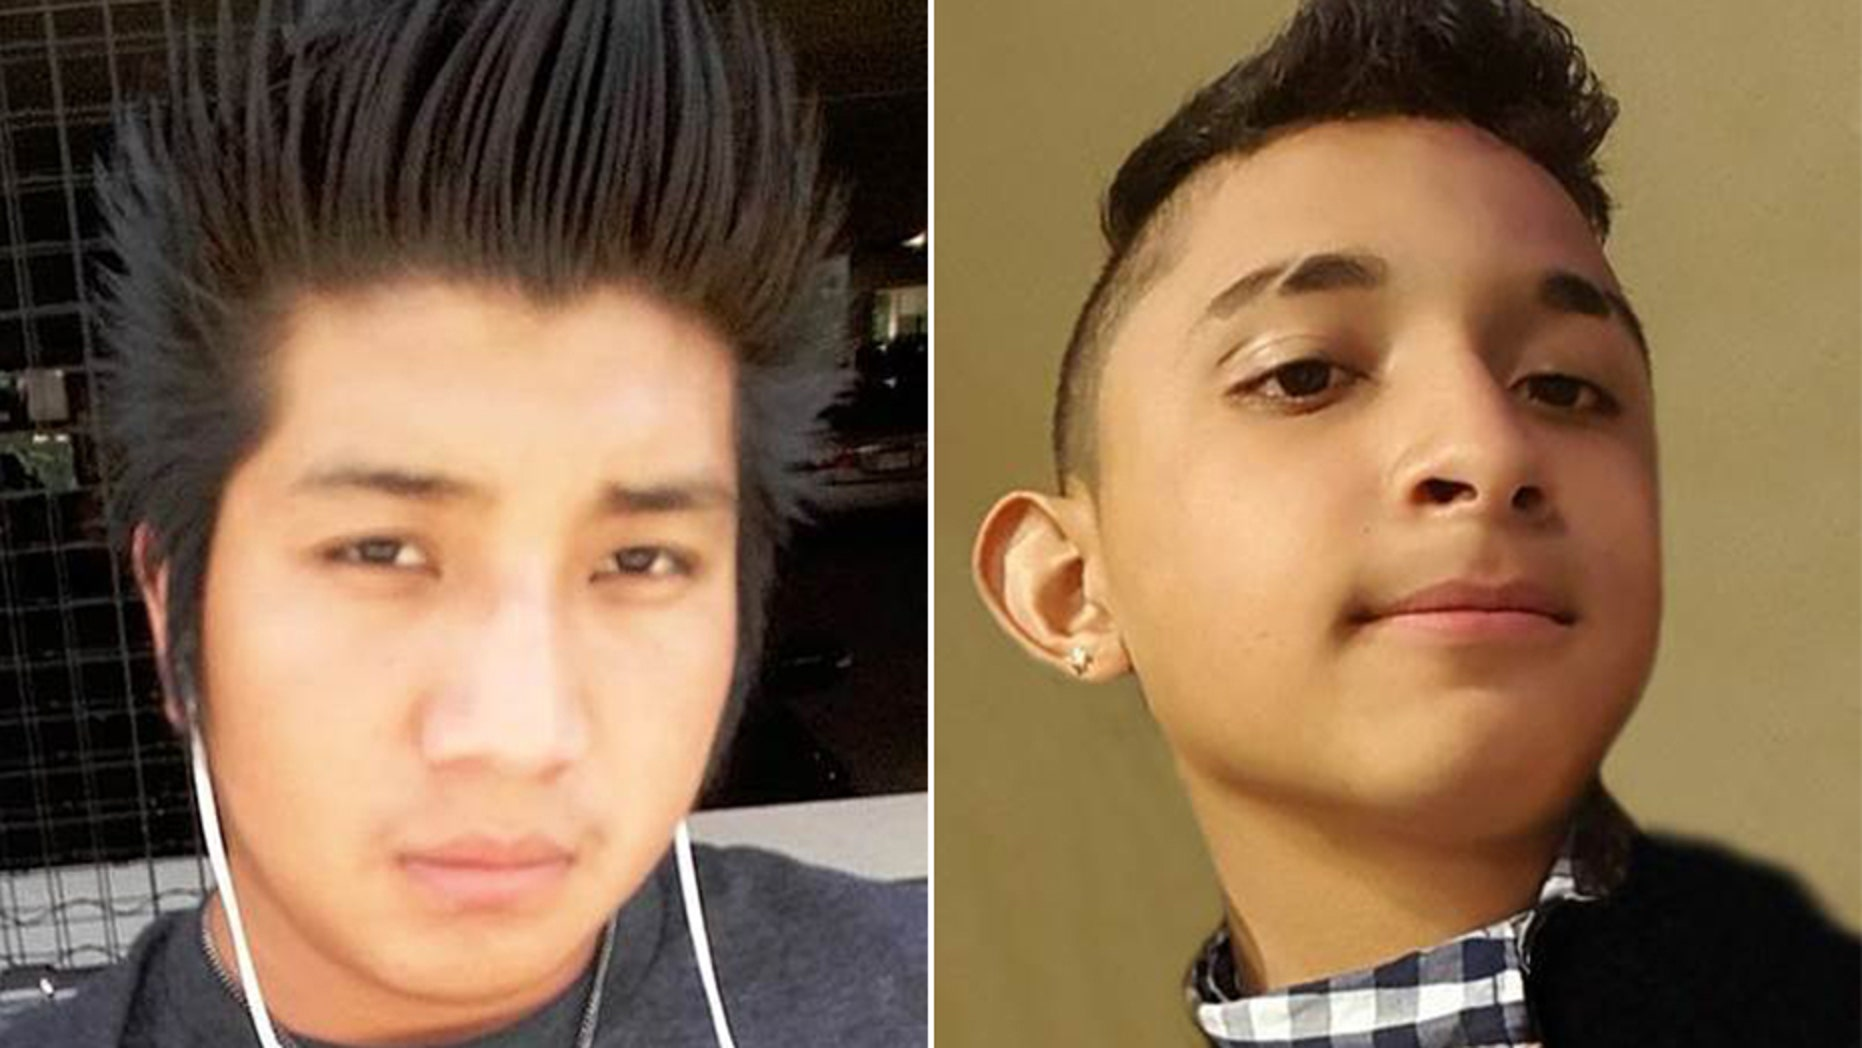 Edvin Escobar Mendez, 17, of Falls Church, left, and Sergio Arita Triminio, 14, of Alexandria, were found dead last year. Eleven MS-13 gang members have been charged Friday in their deaths.